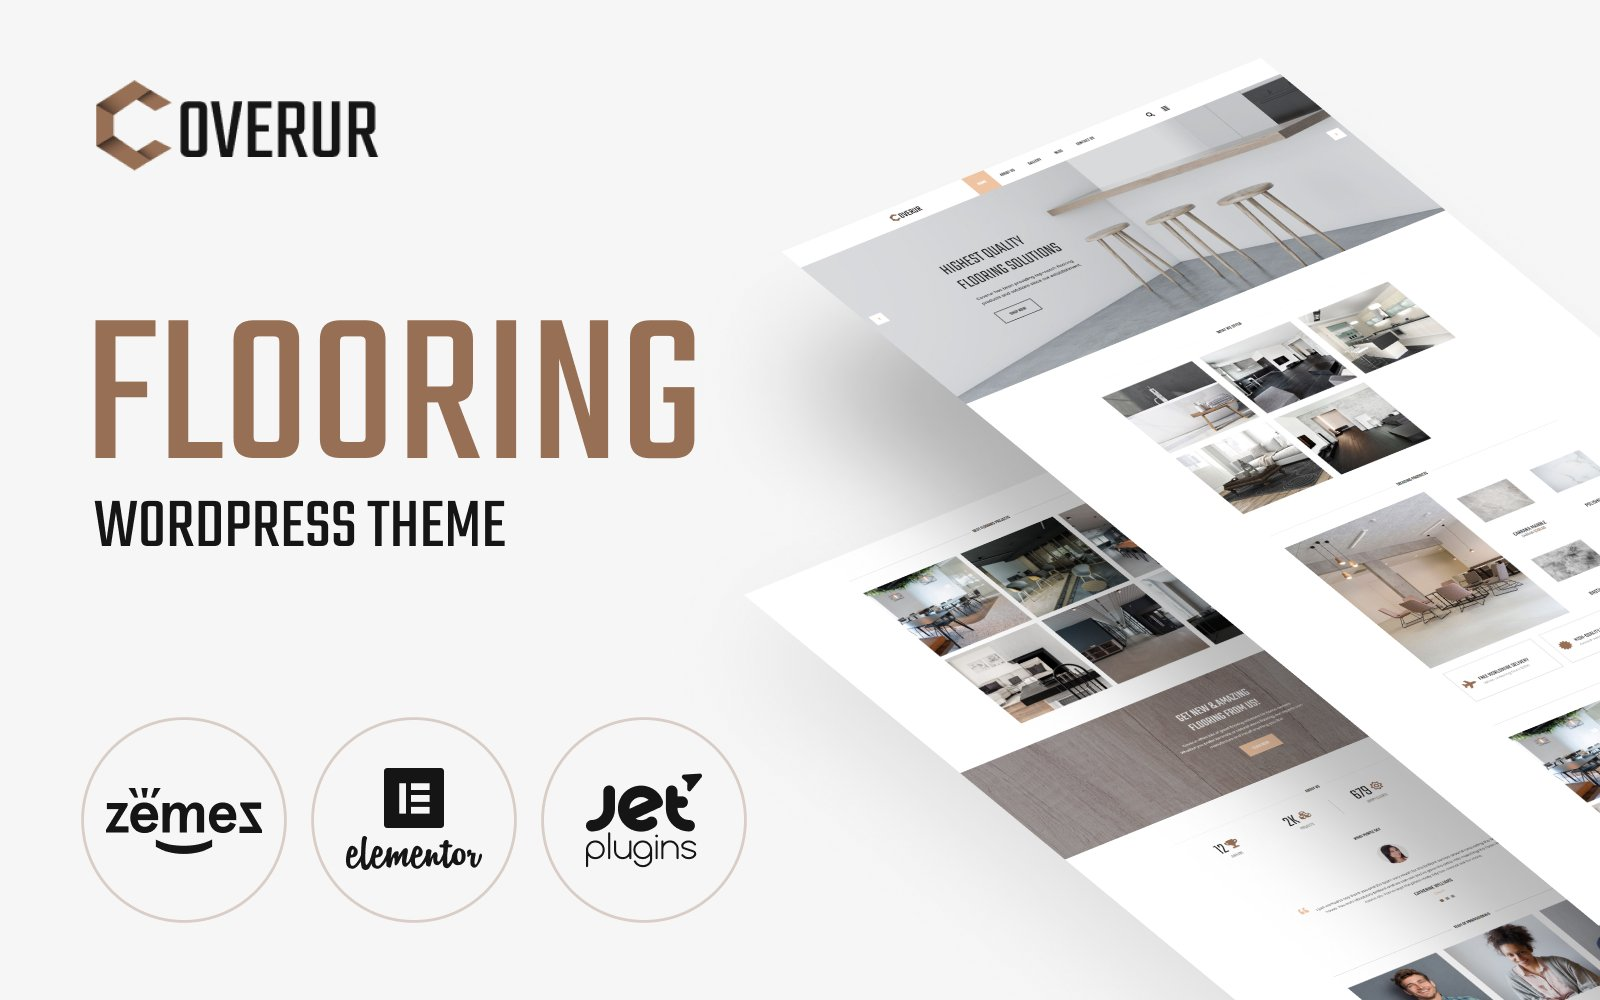 Coverur - Flooring Company Multipurpose Minimal Elementor WordPress Theme